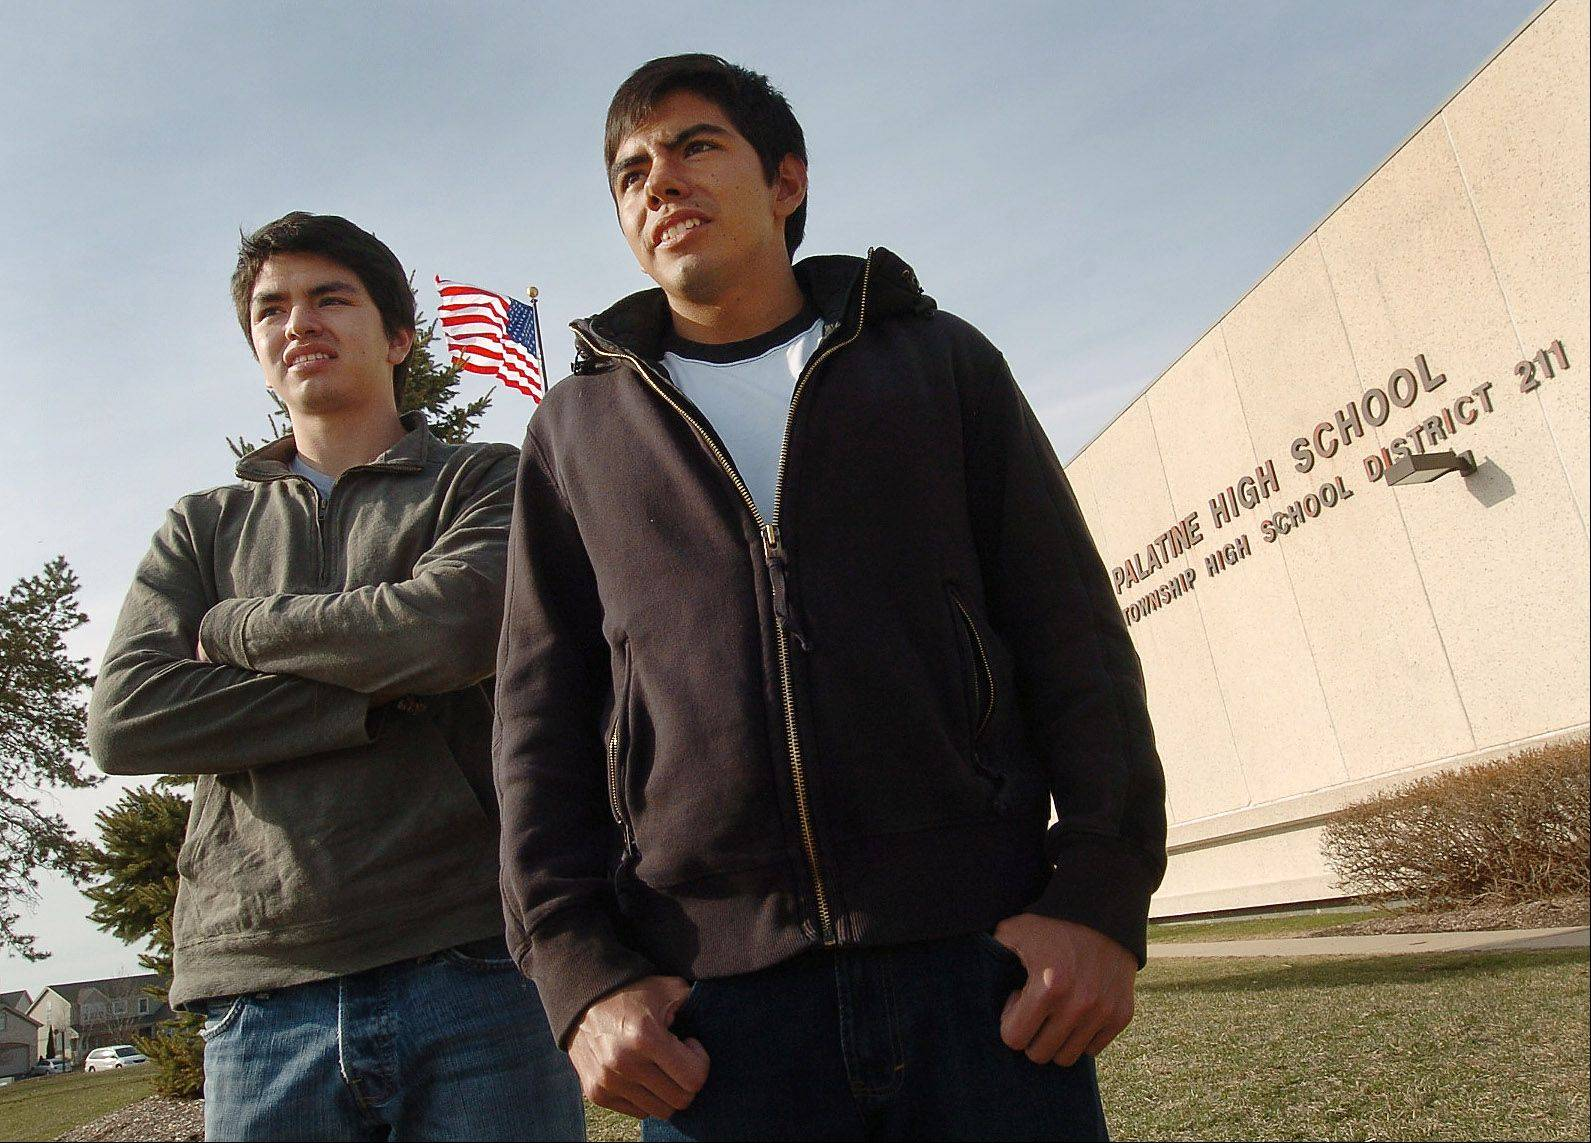 College students Rafael, left, and Carlos Robles have won a temporary deportation reprieve thanks to the efforts of U.S. Sen. Dick Durbin and lawyers from the National Immigration Justice Center.